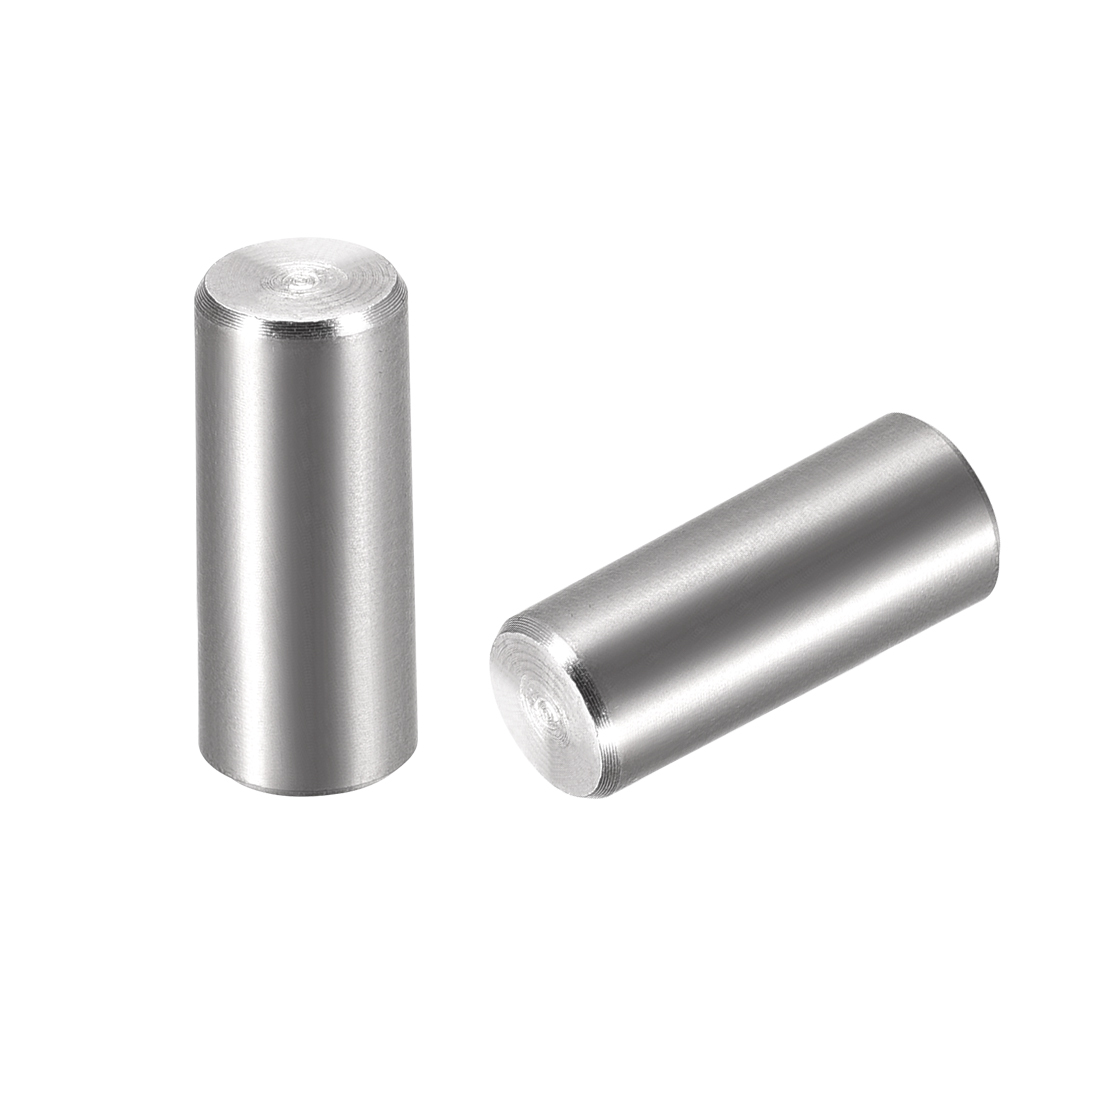 2Pcs 10mm X 45mm Dowel Pin 304 Stainless Steel Cylindrical Shelf Support Pin